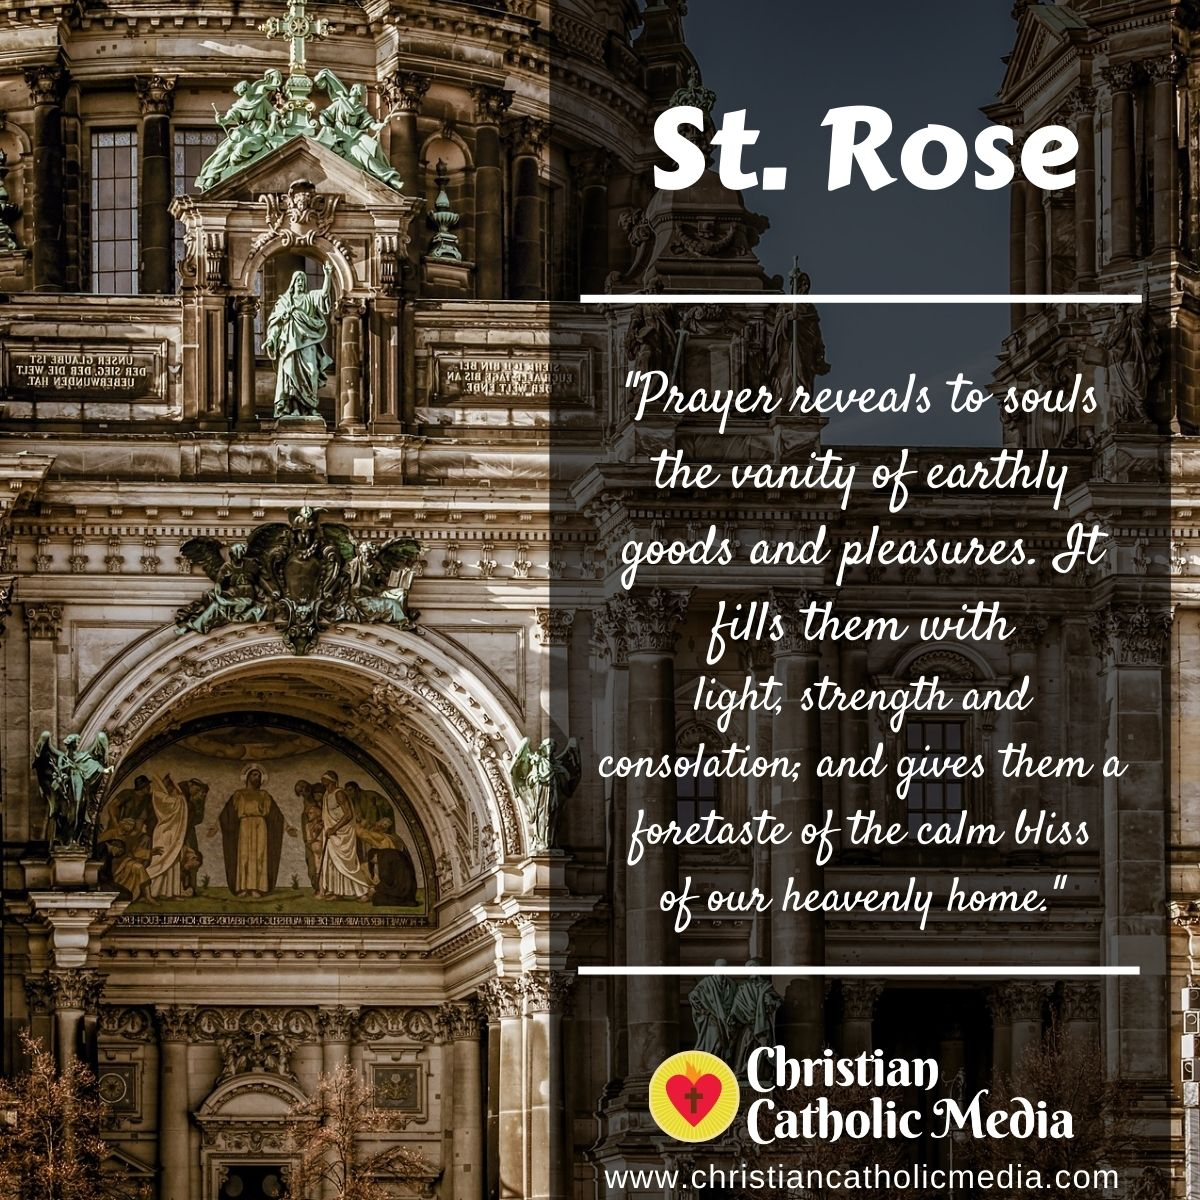 St. Rose - Tuesday February 16, 2021